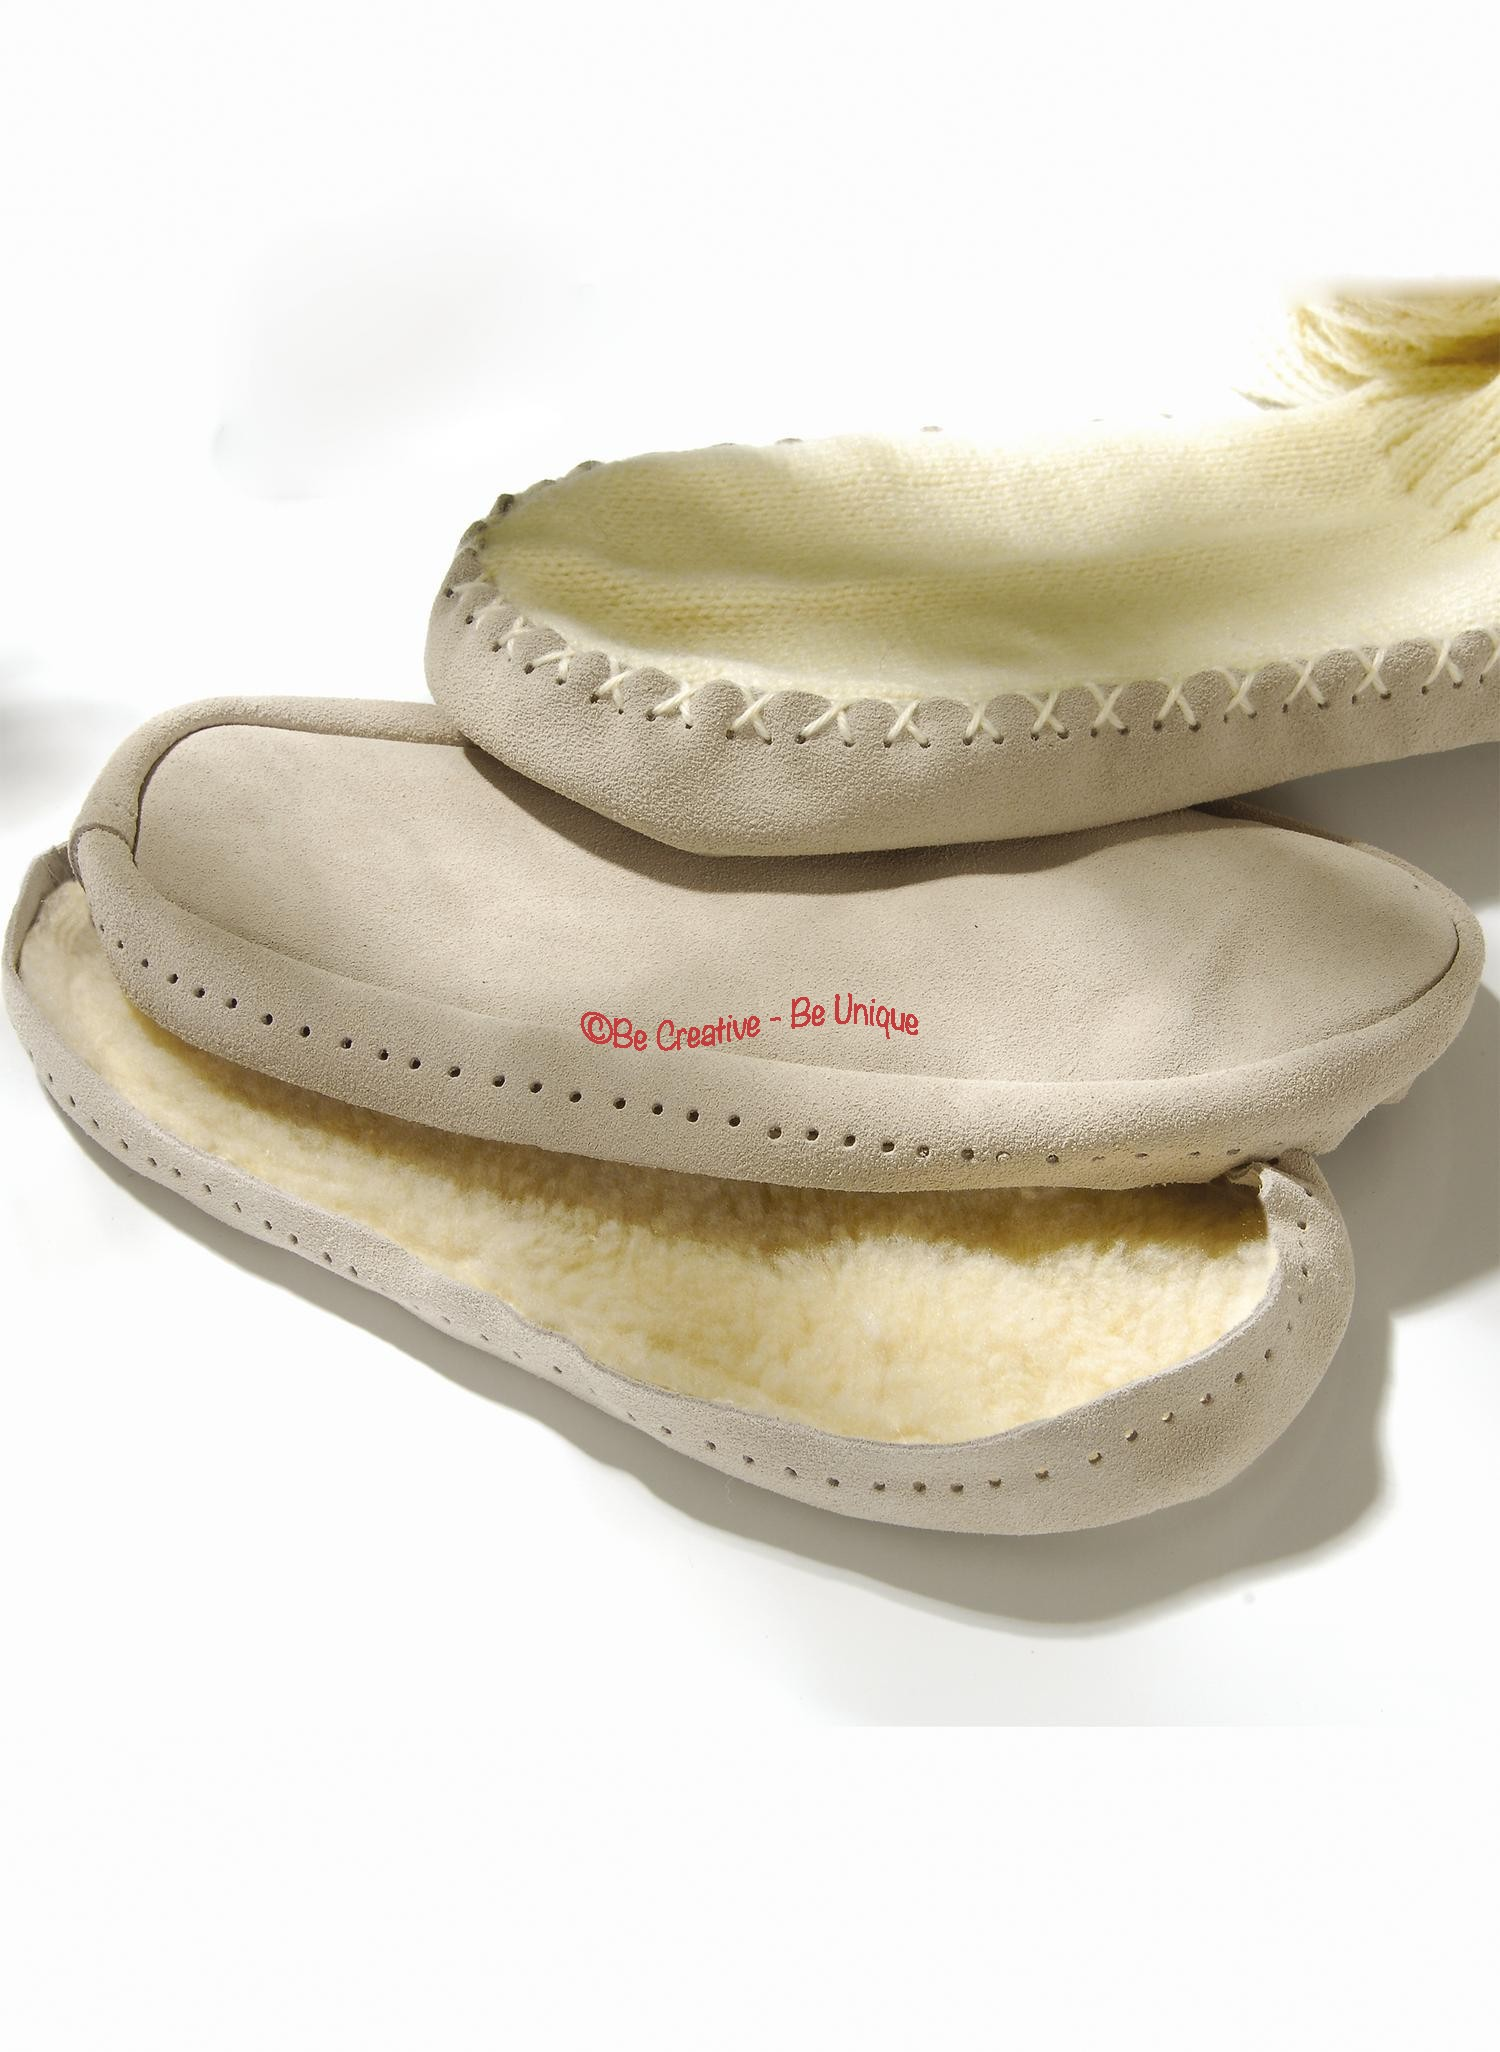 Bergere de France - Sew-on soles - 6-7 UK